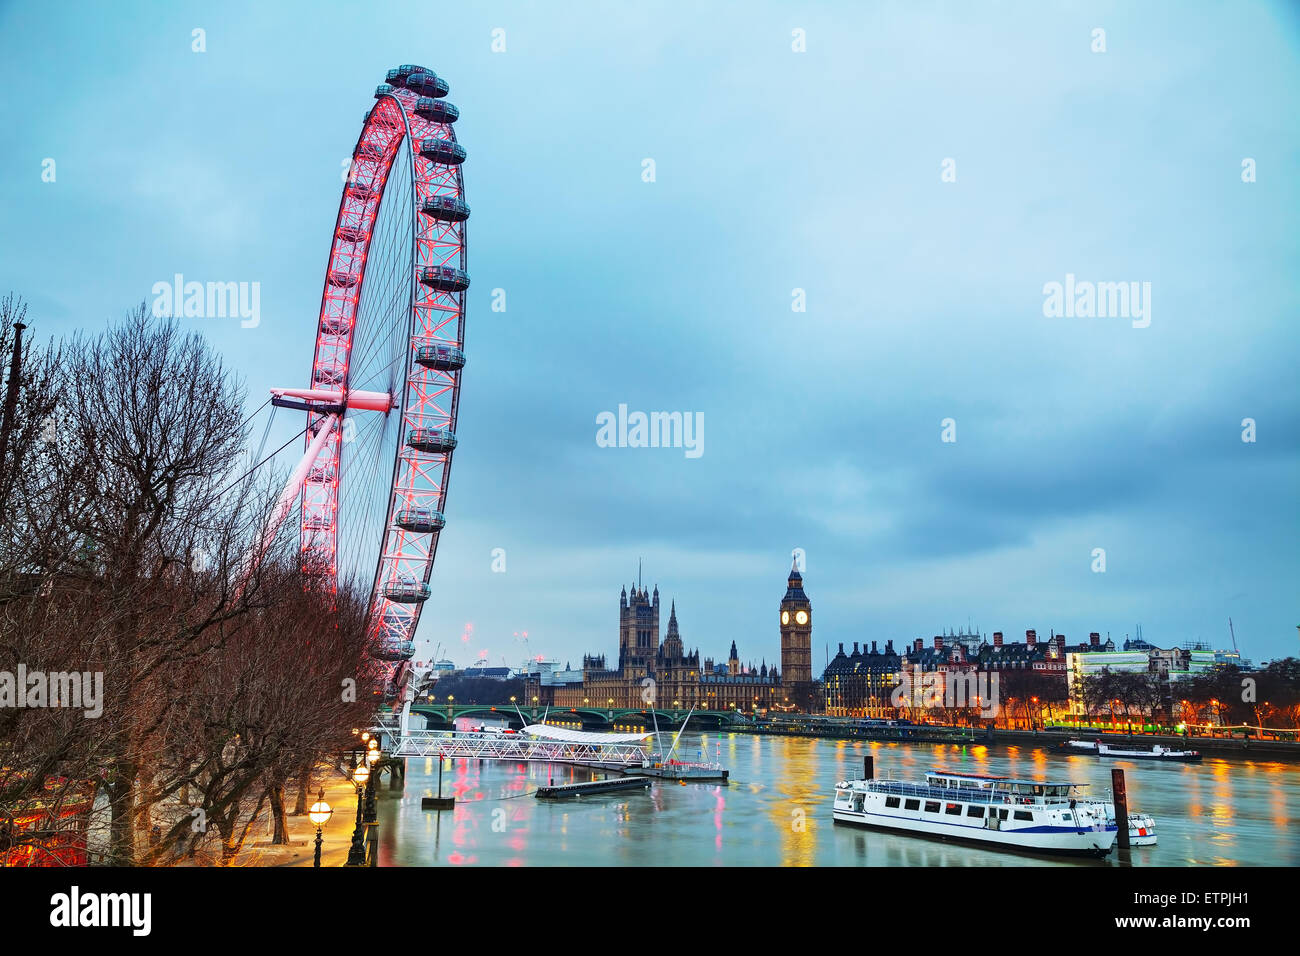 LONDON - APRIL 5: Overview of London with the Coca-Cola London Eye on April 5, 2015 in London, UK. - Stock Image